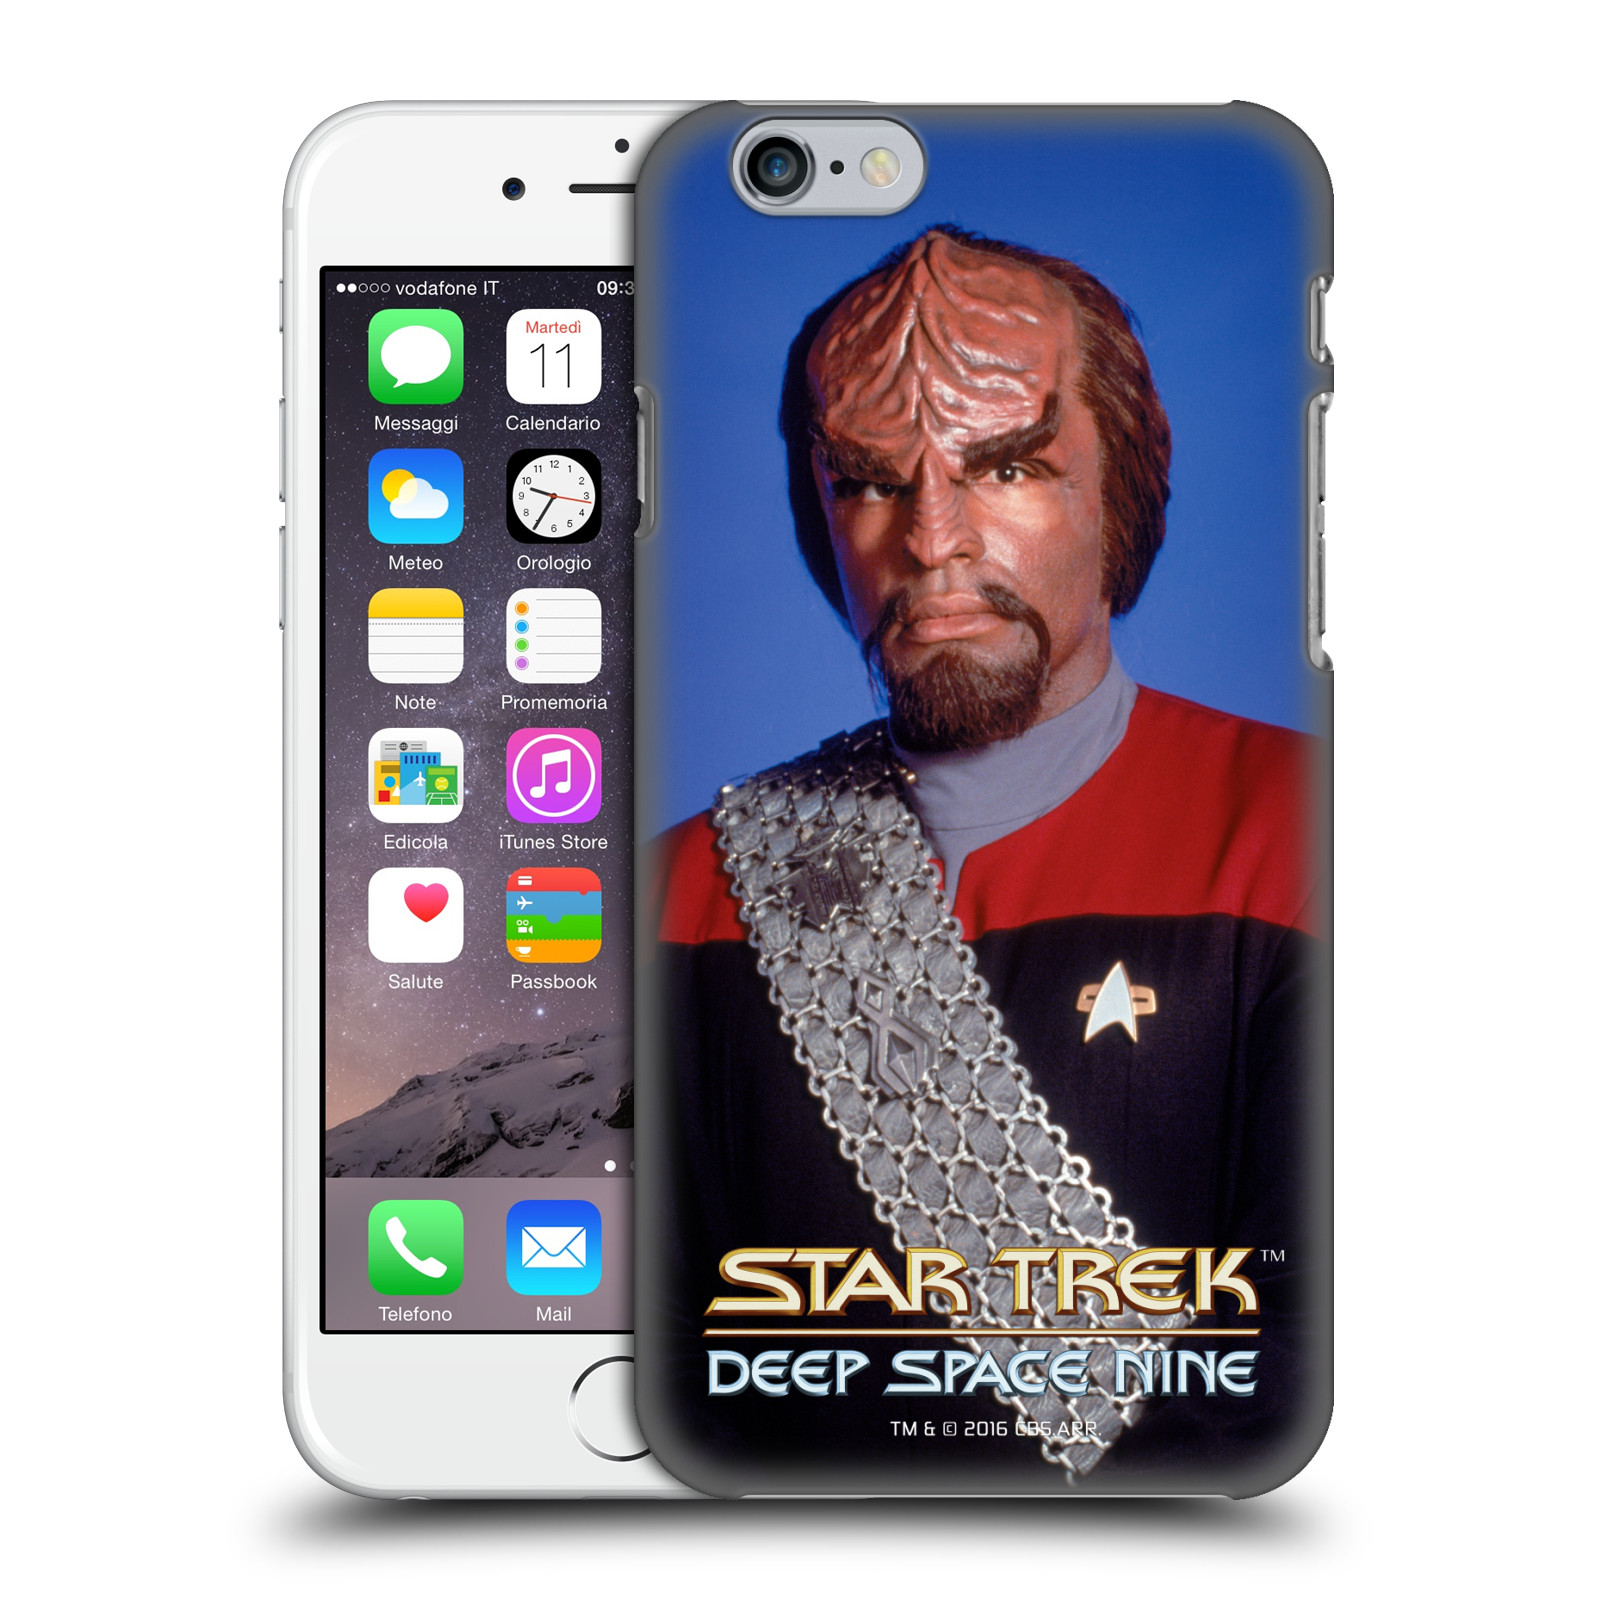 Star Trek Iconic Characters DS9-Worf